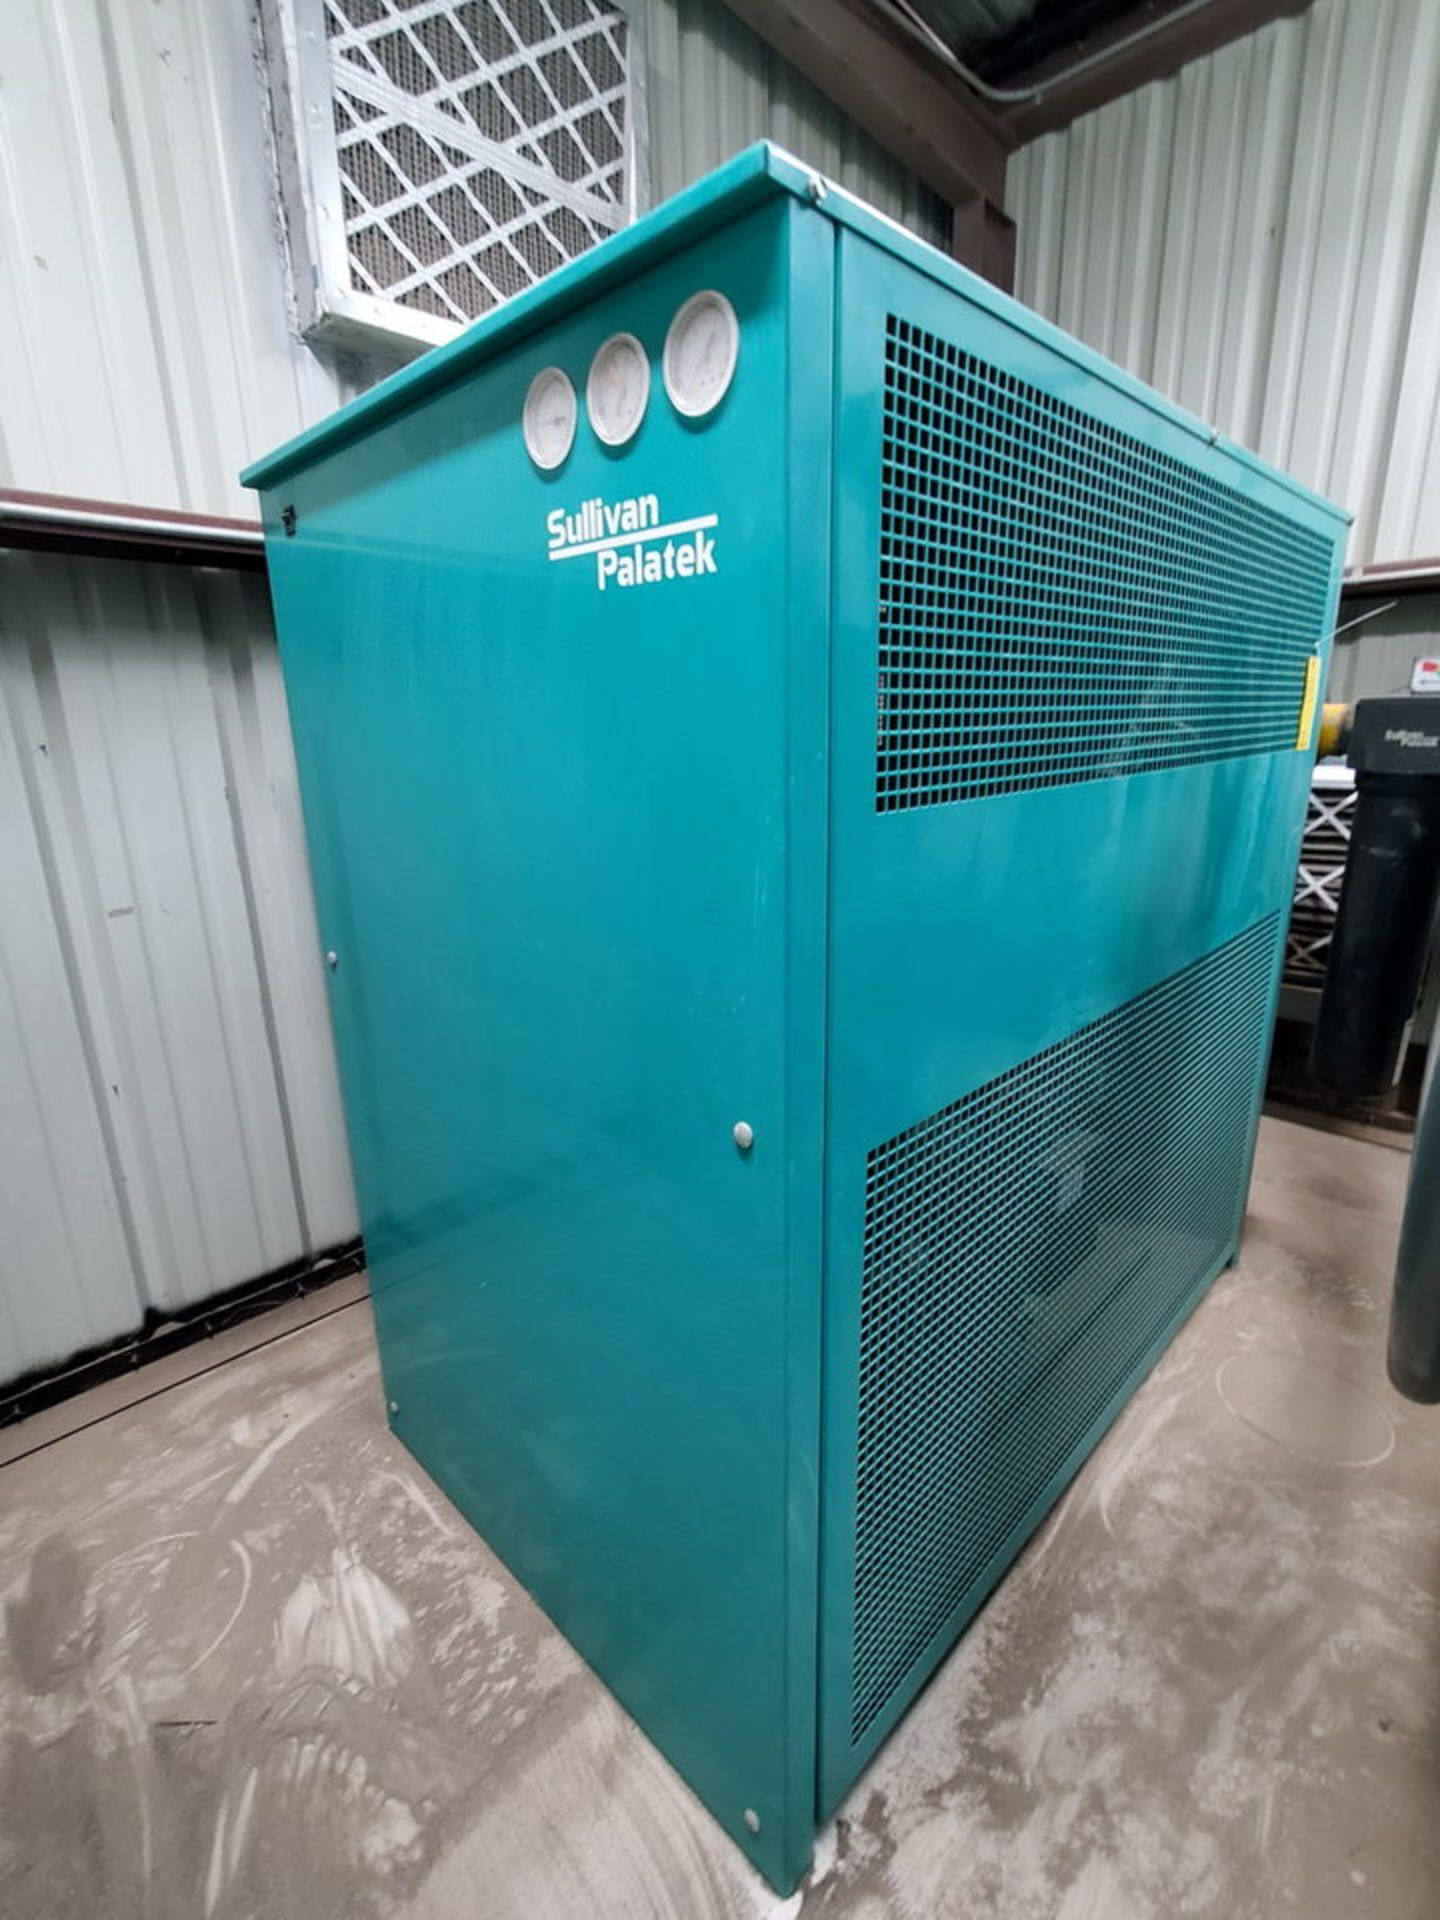 2017 Sullivan Palatek SPRF-1175A-436 Air Dryer 460V, 11.8A, 5HP, 150psi